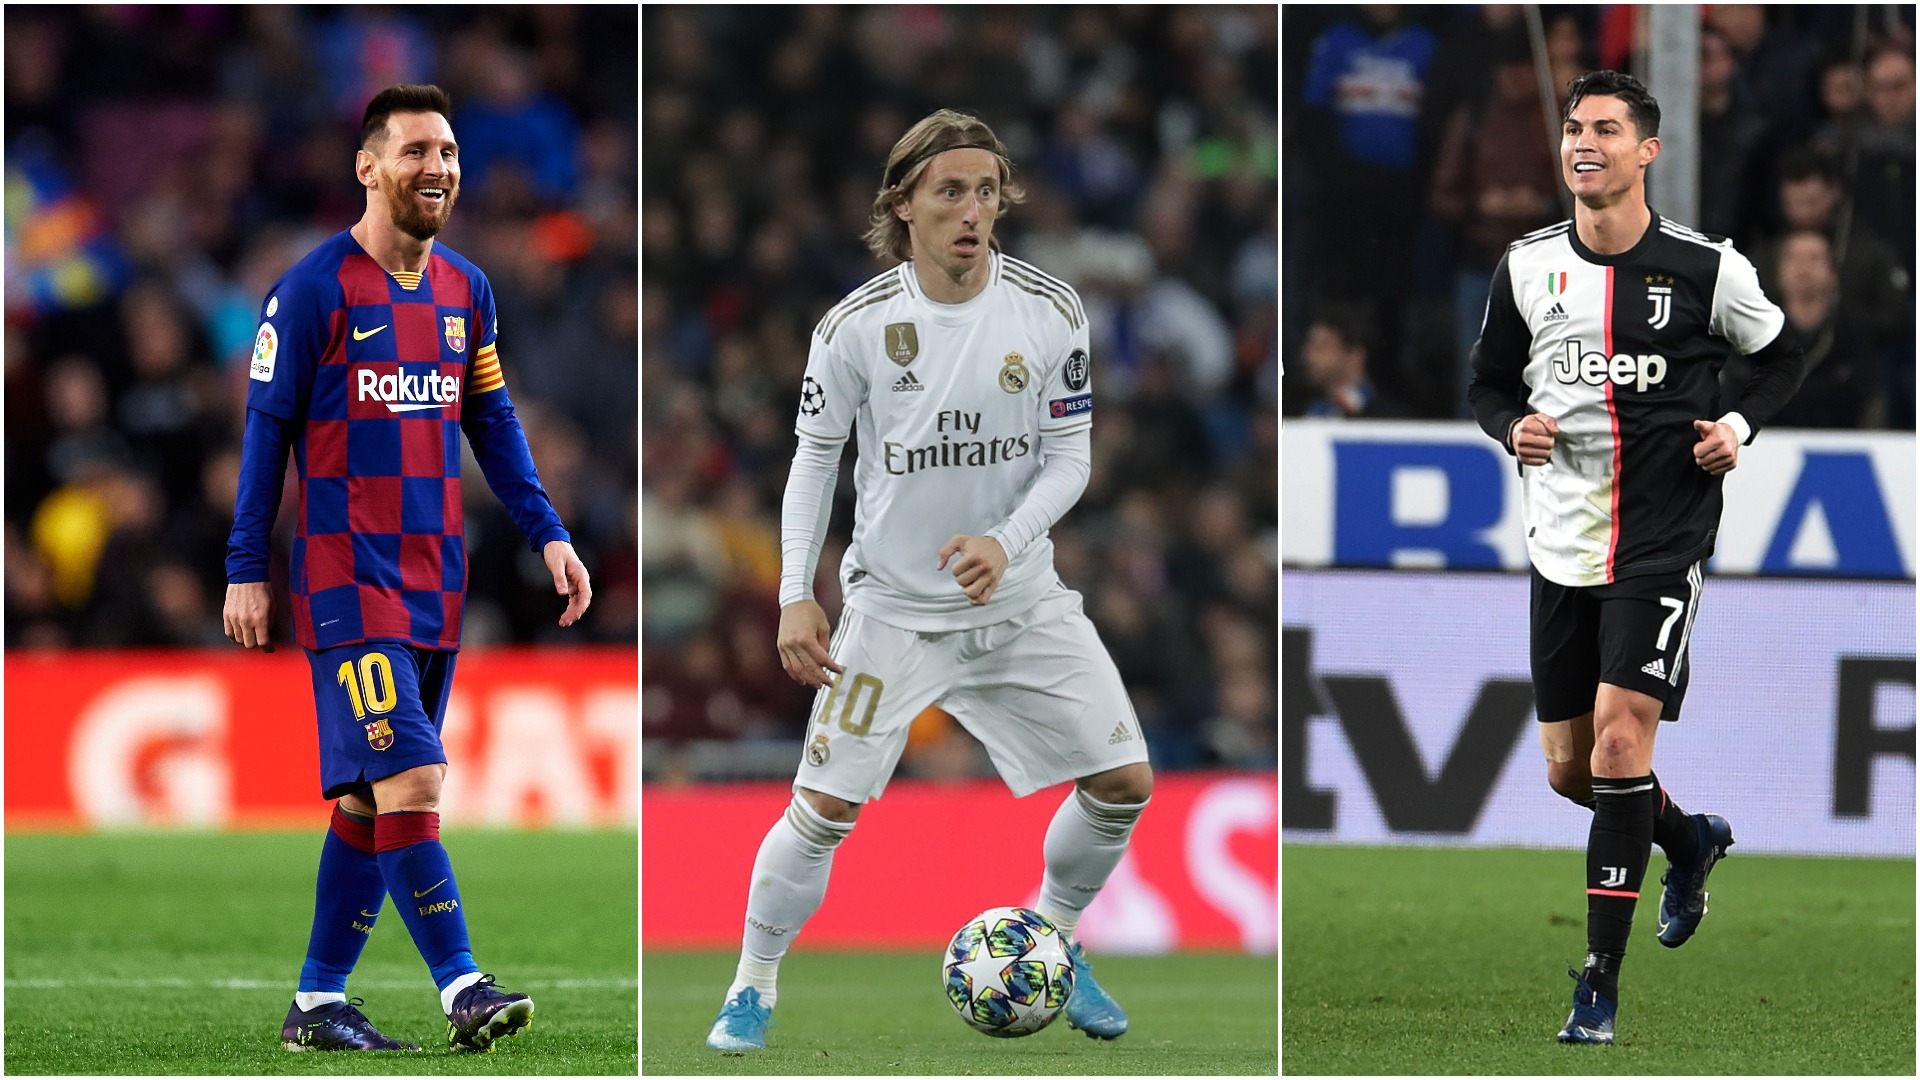 Van Dijk or Kompany? Suarez or Lewandowski? – Who joins Messi, Ronaldo in Team of the Decade?